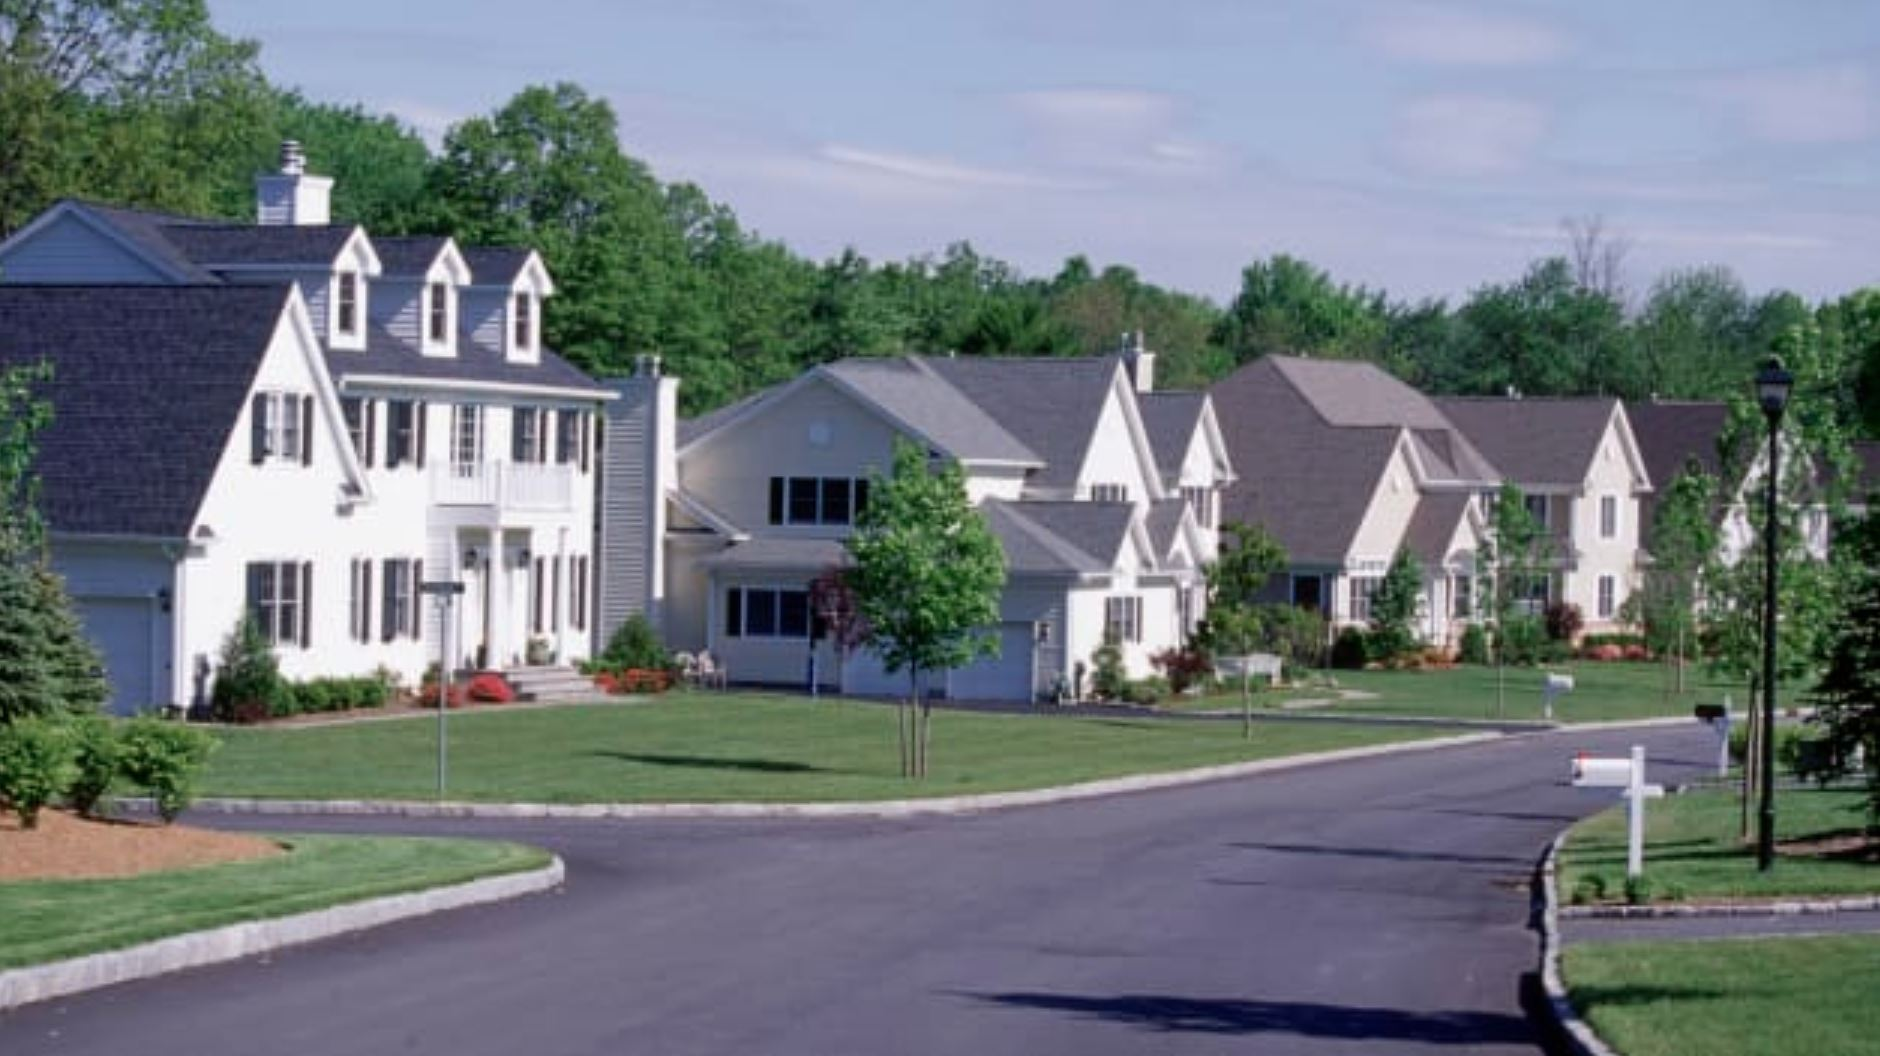 Realtor Magazine 2020 05 03 New York Pandemic making suburbs look more attractive to Buyers after COVID-19 Coronavirus outbreak Hoey Team eXp Realty